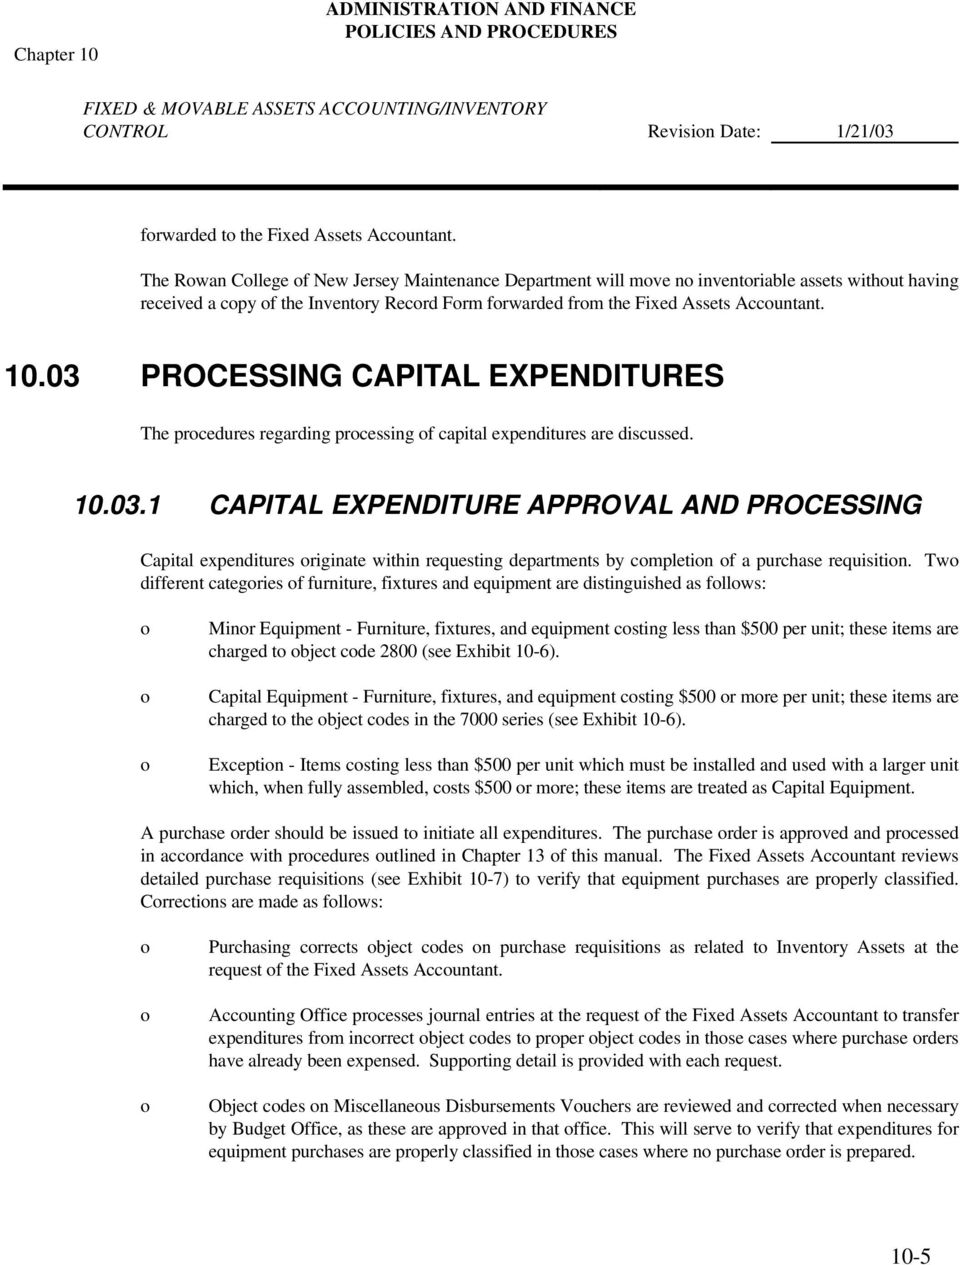 03 PROCESSING CAPITAL EXPENDITURES The prcedures regarding prcessing f capital expenditures are discussed. 10.03.1 CAPITAL EXPENDITURE APPROVAL AND PROCESSING Capital expenditures riginate within requesting departments by cmpletin f a purchase requisitin.